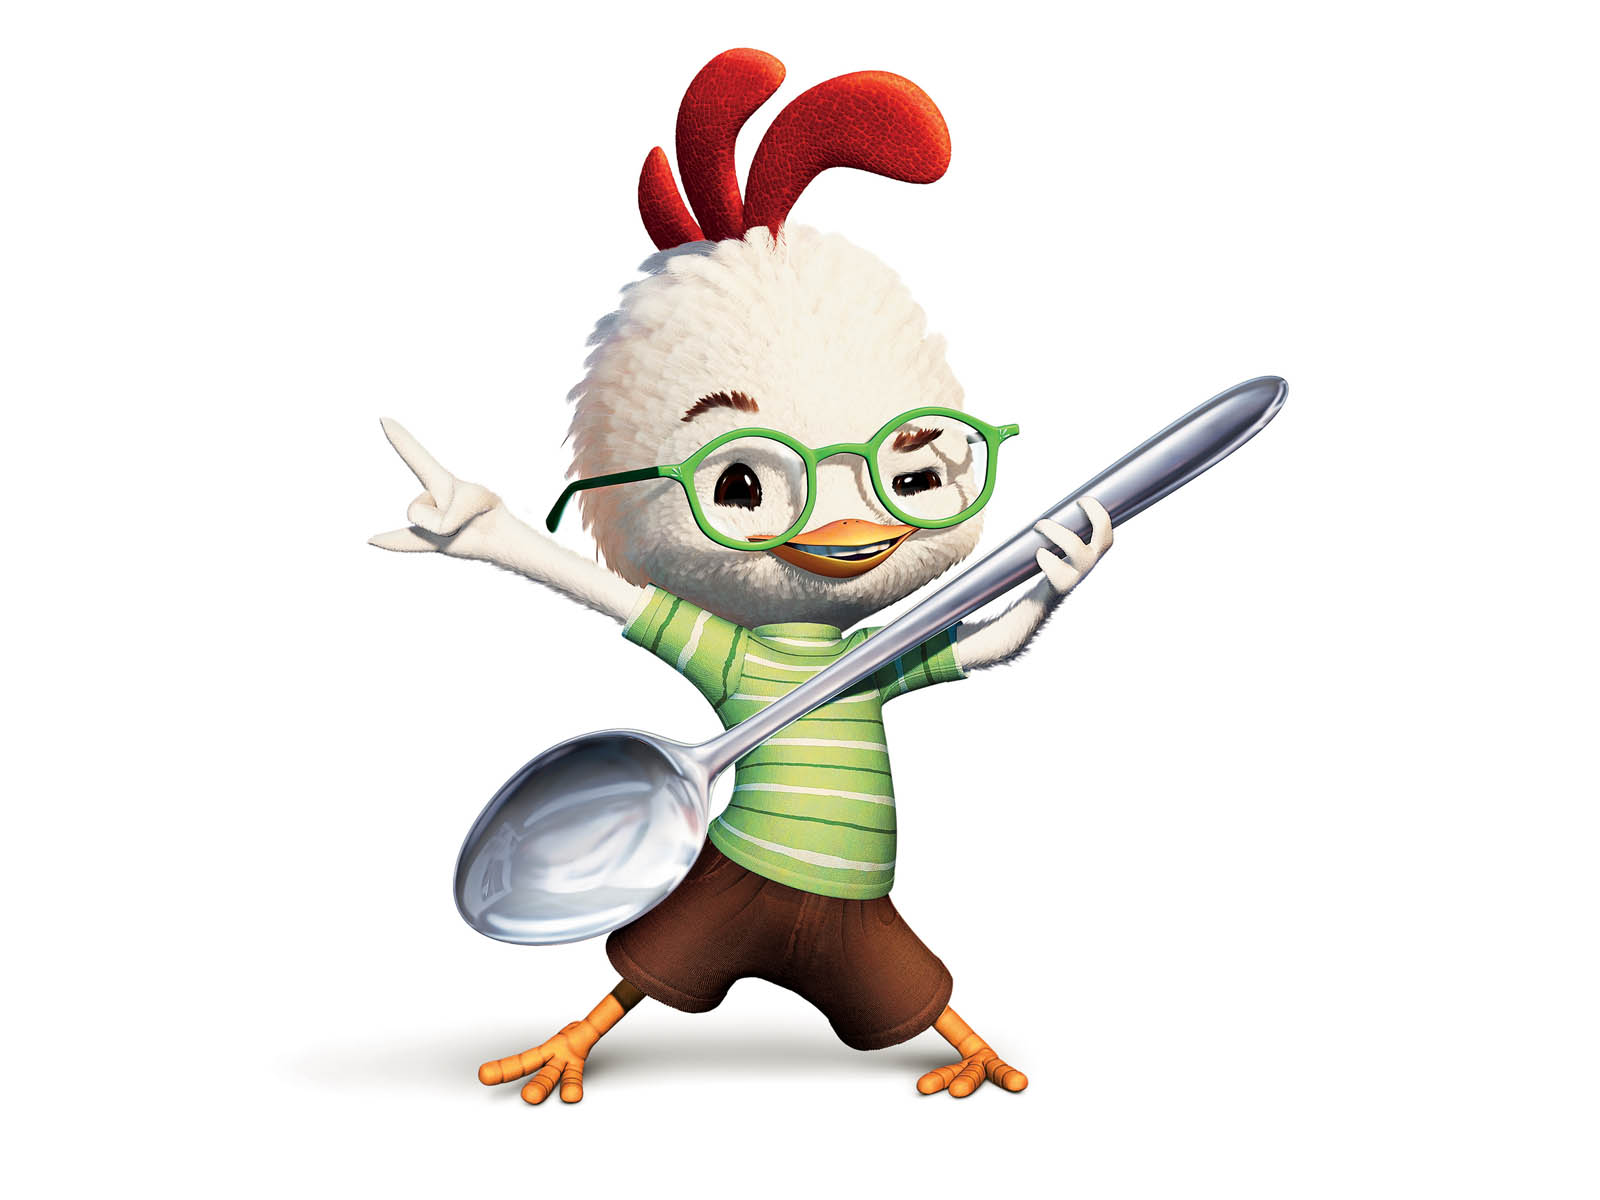 Gas Mask Wallpaper For Iphone Wallpapers Chicken Little Wallpapers